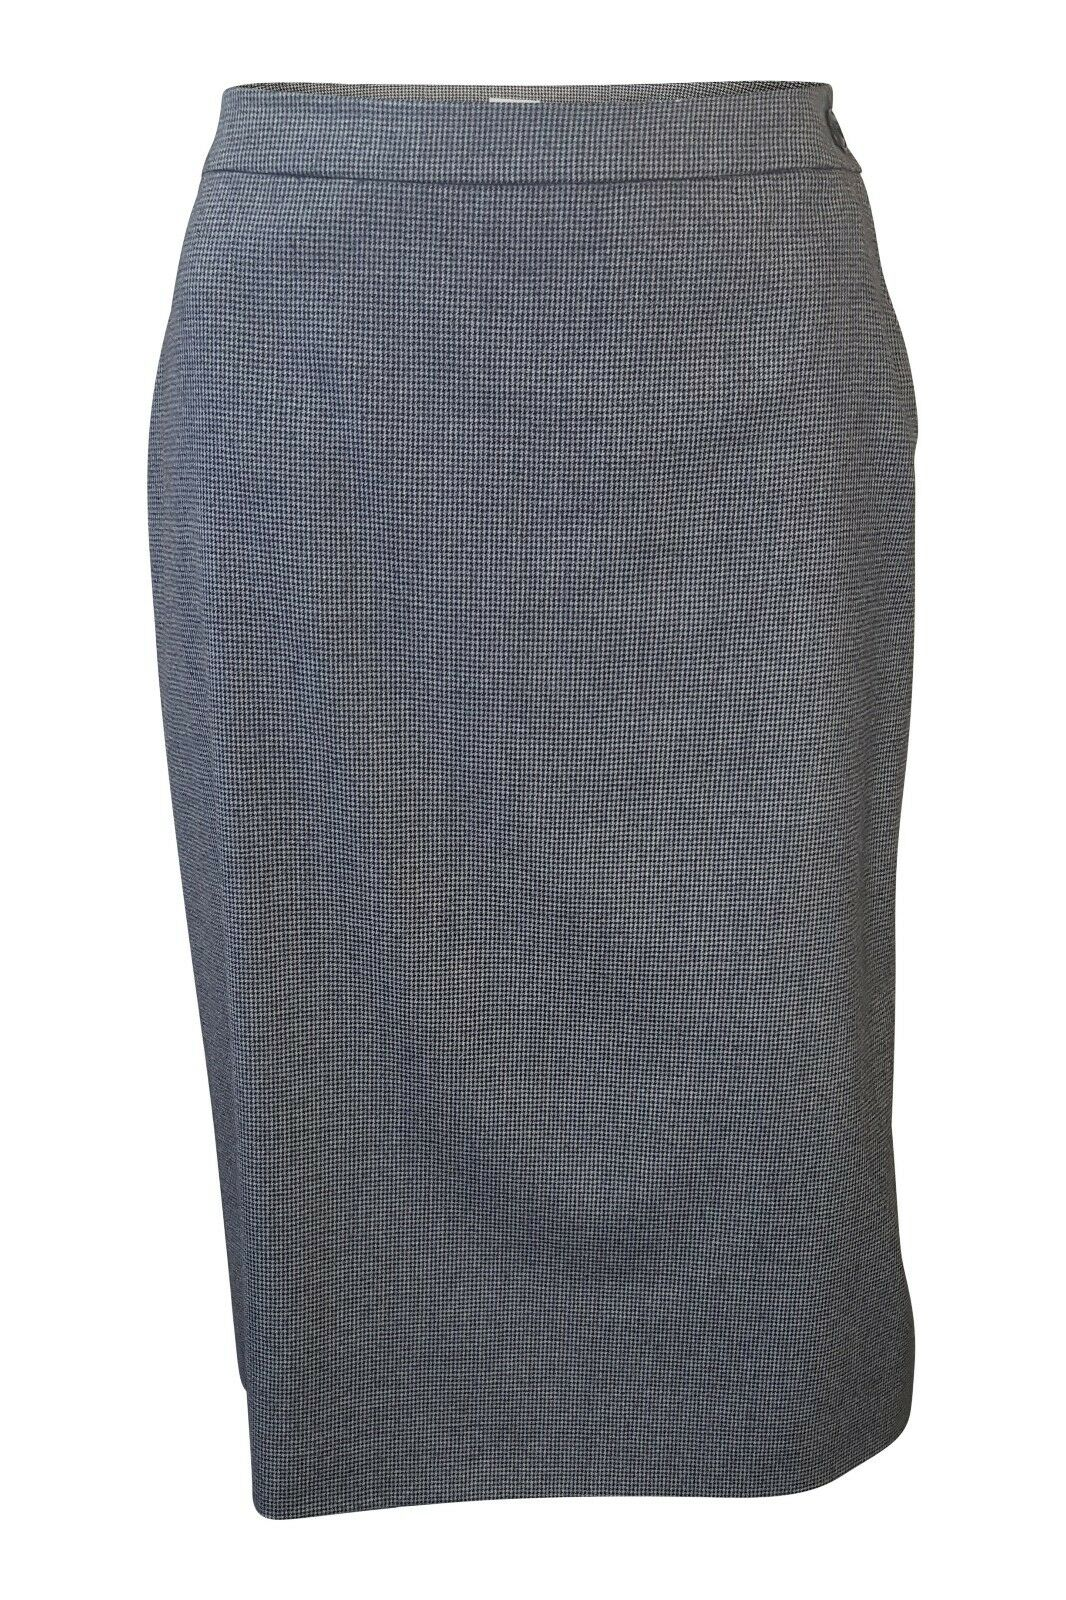 HERMES DOGSTOOTH GREY 100% WOOL SILK LINED A LINE SKIRT (44)